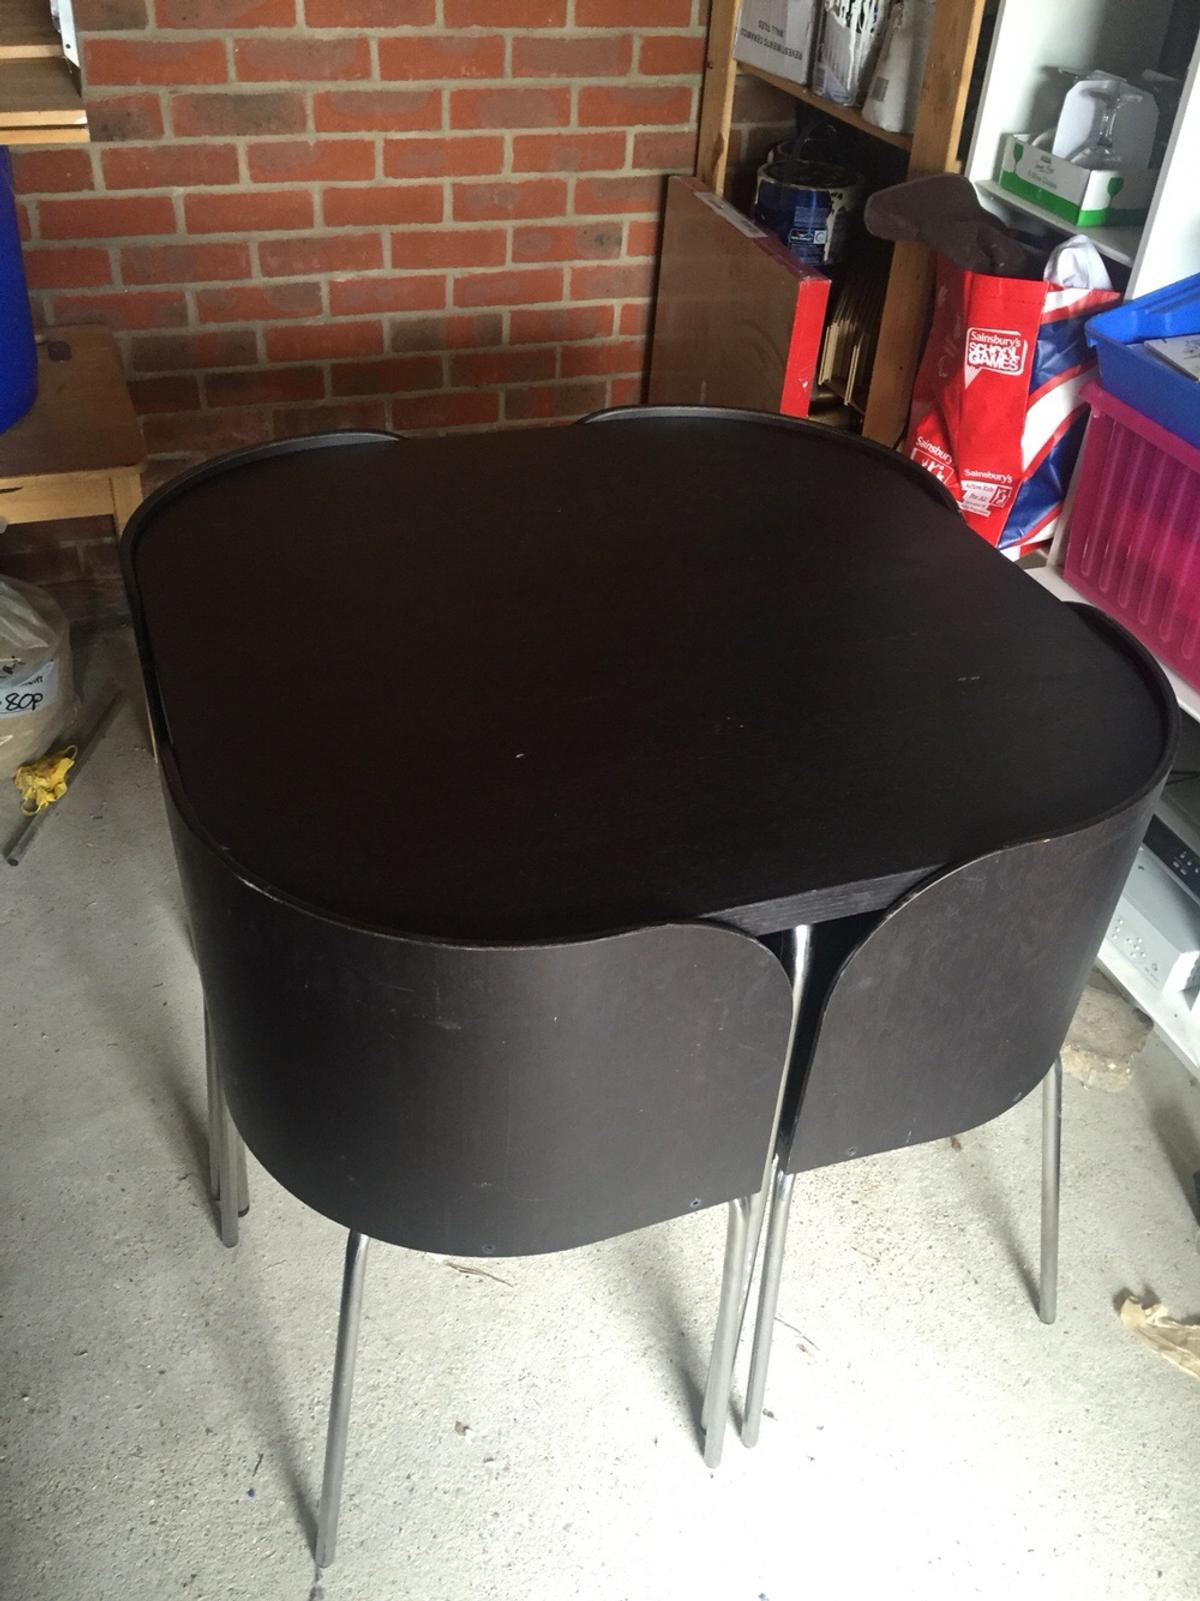 Ikea Fusion Table And Chairs In Rm16 Hundred For 30 00 For Sale Shpock